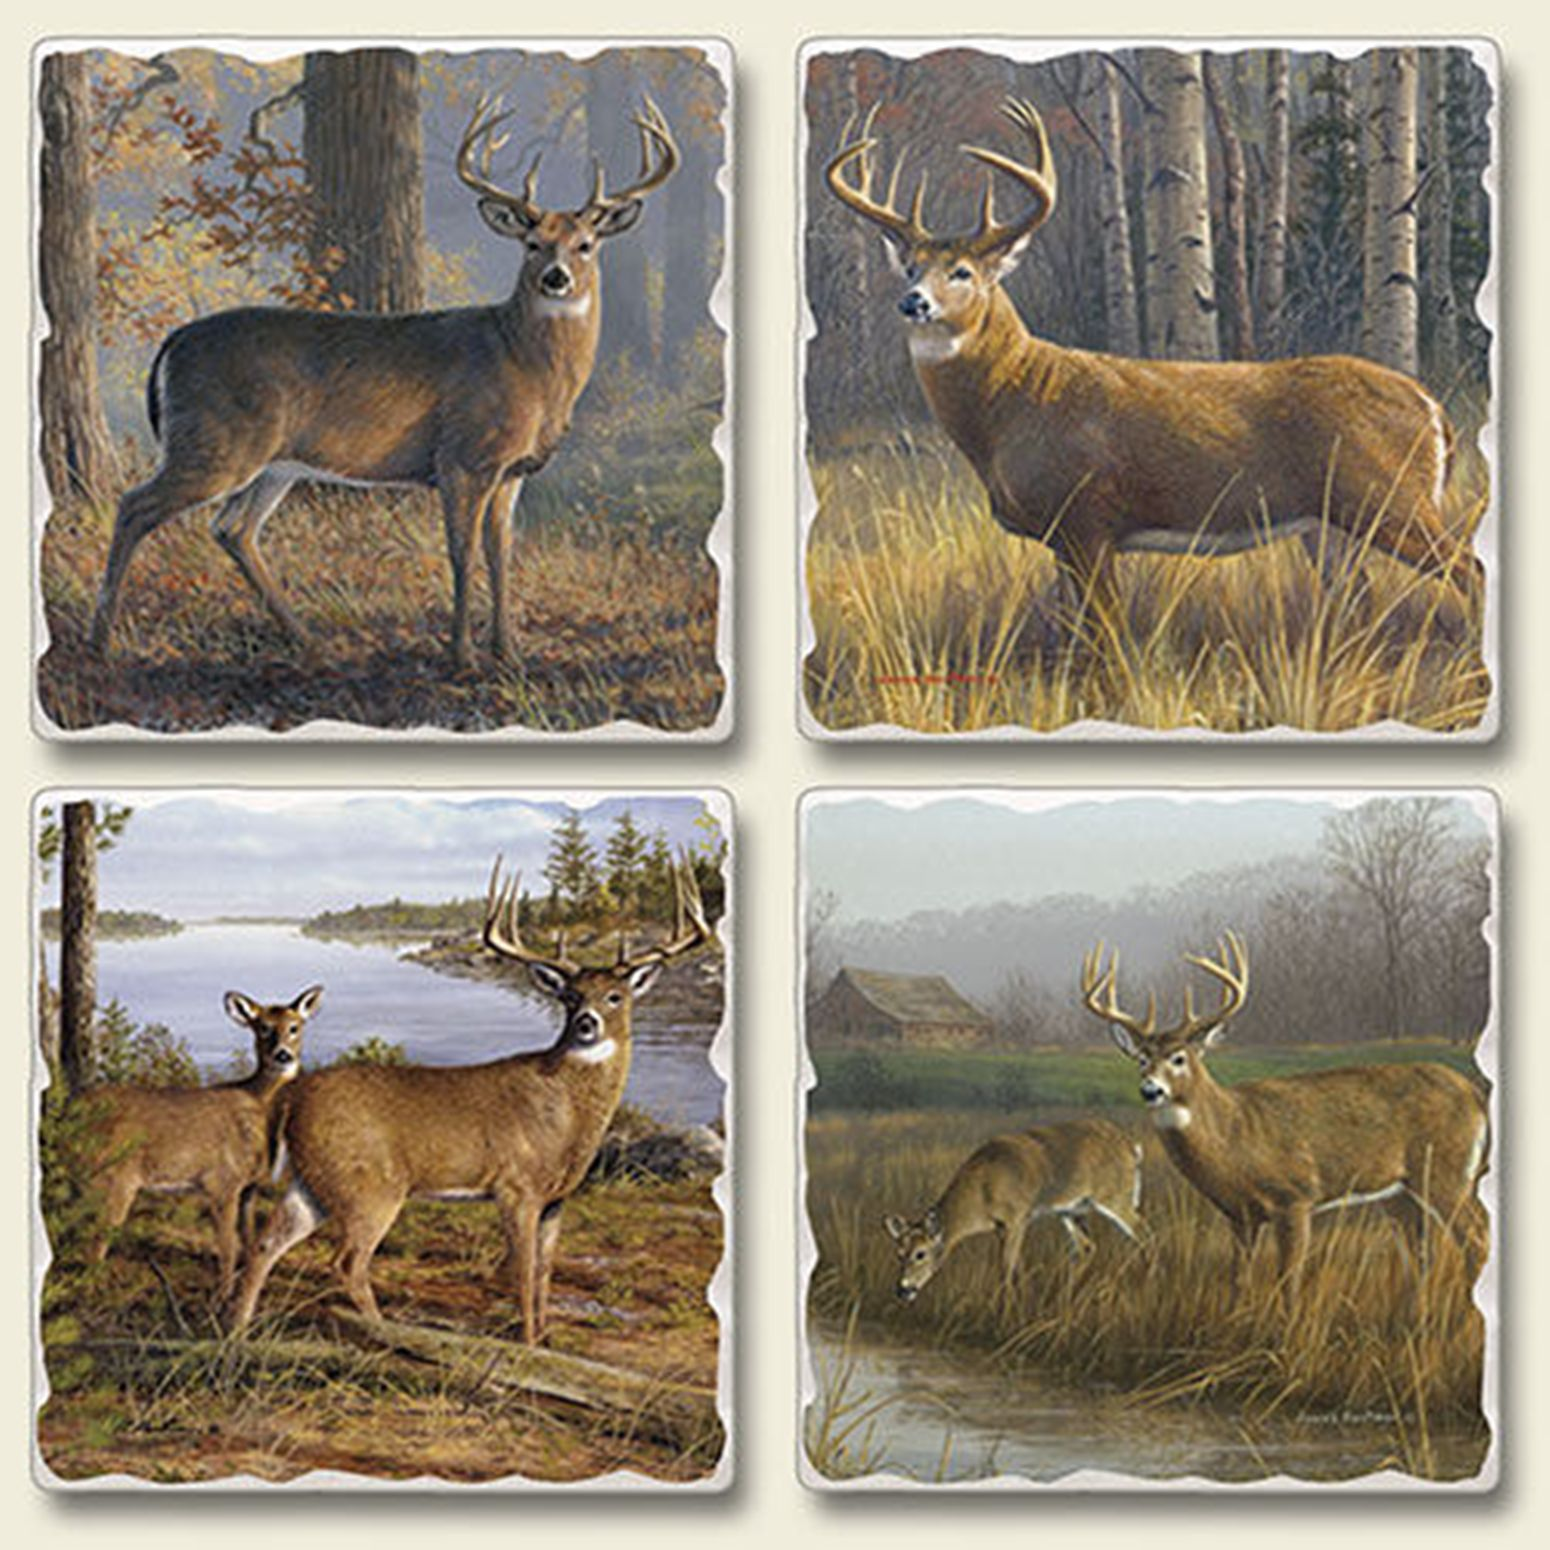 Buck and Doe Deer Hunter Woodland Legends Tumbled Stone Coasters Set of 4